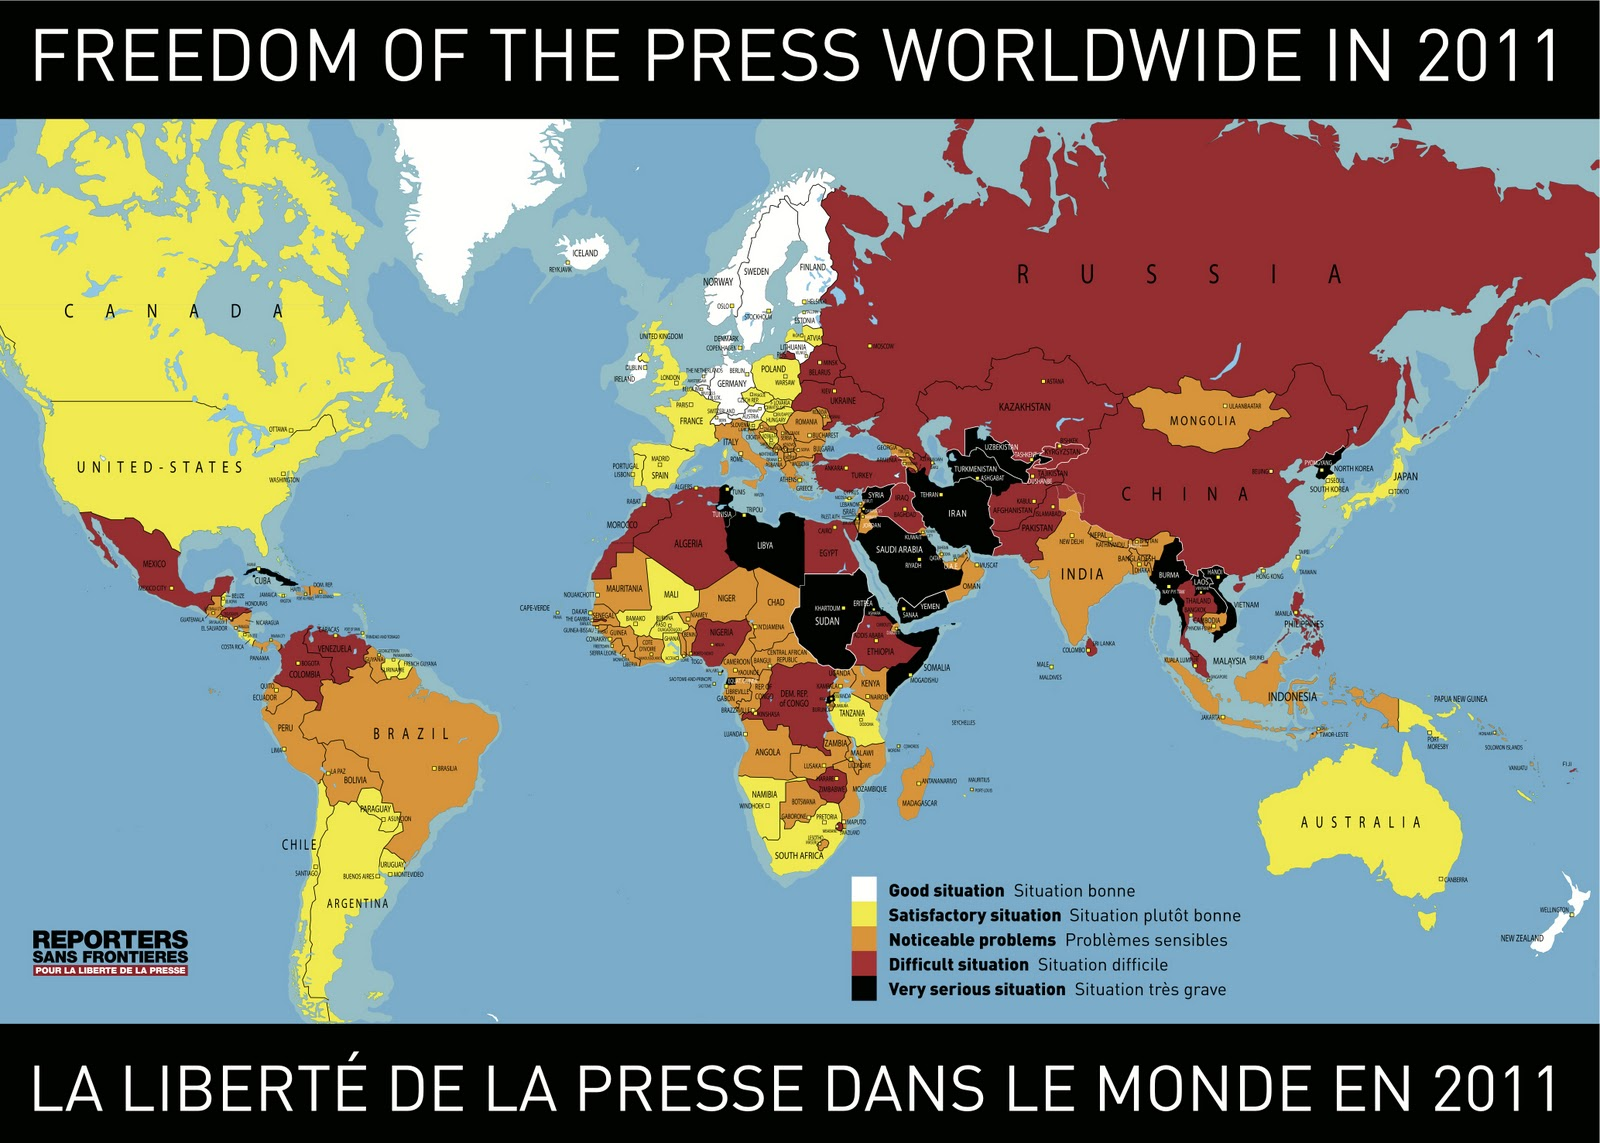 2011-02-rsf-press-freedom-map-2011.jpg